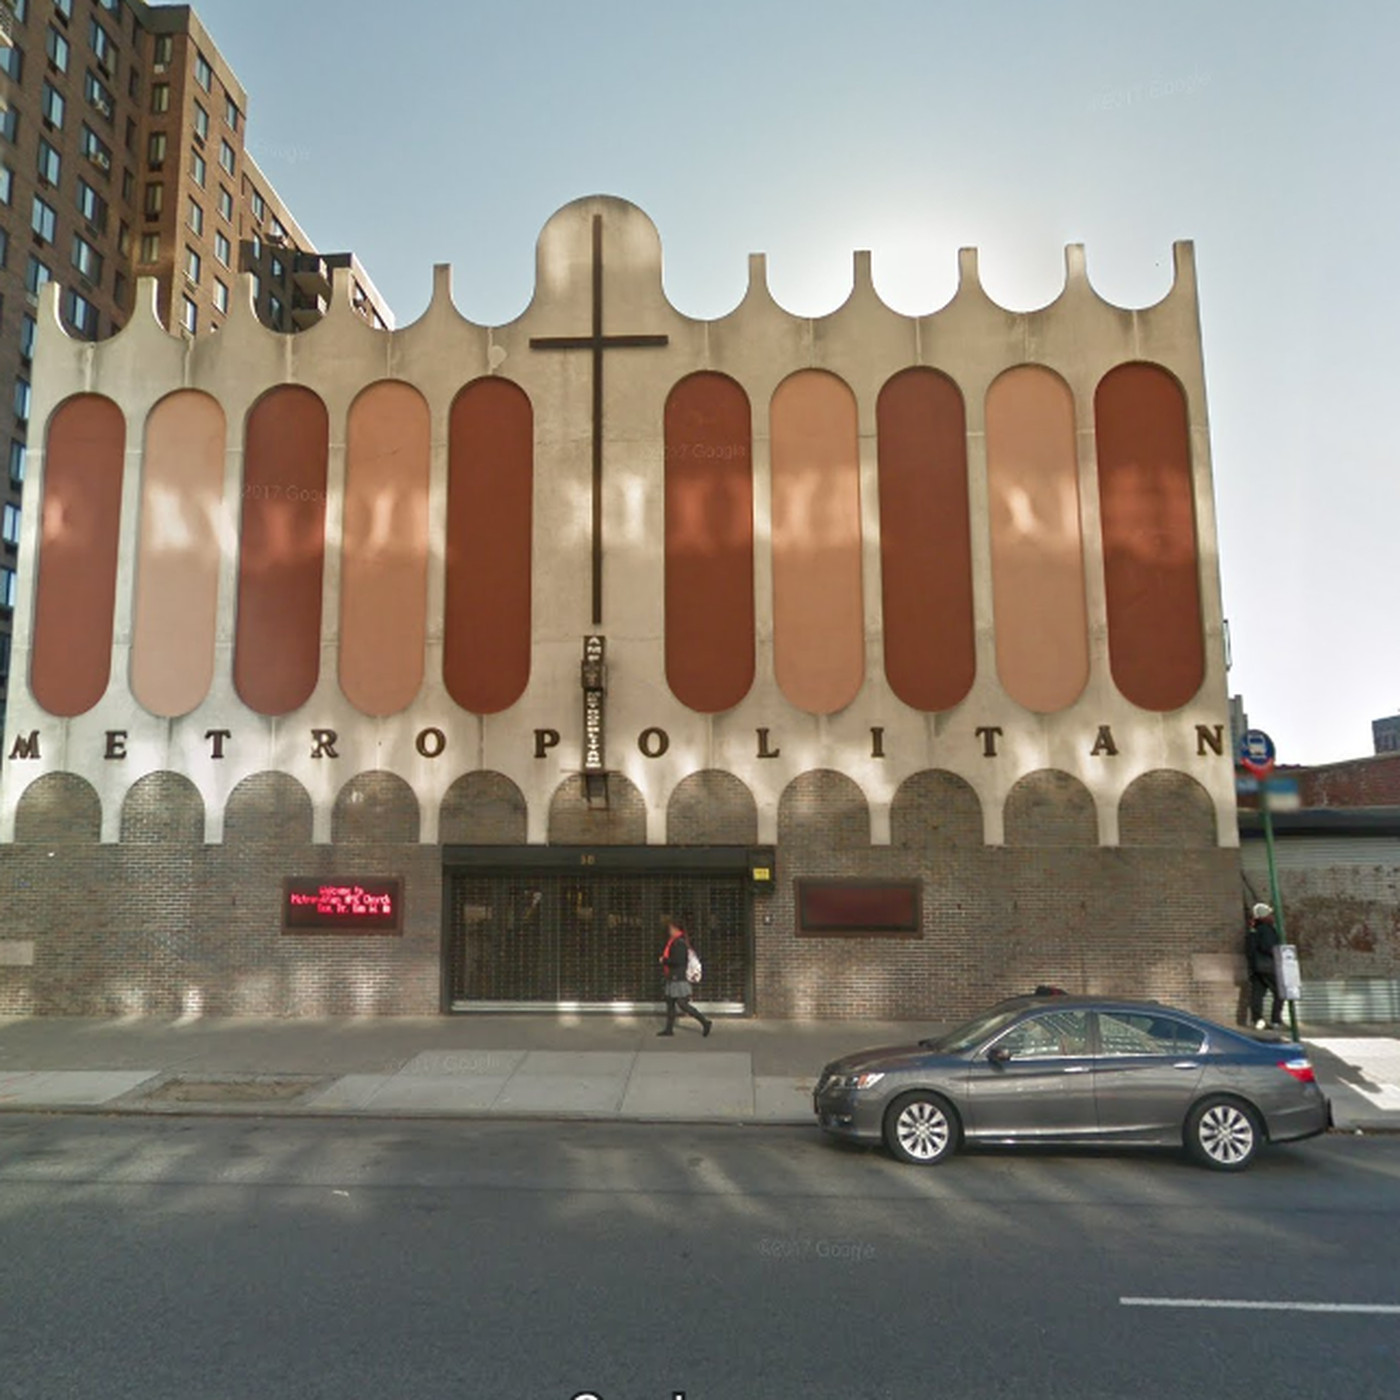 Century old Harlem church will be razed for new apartment building